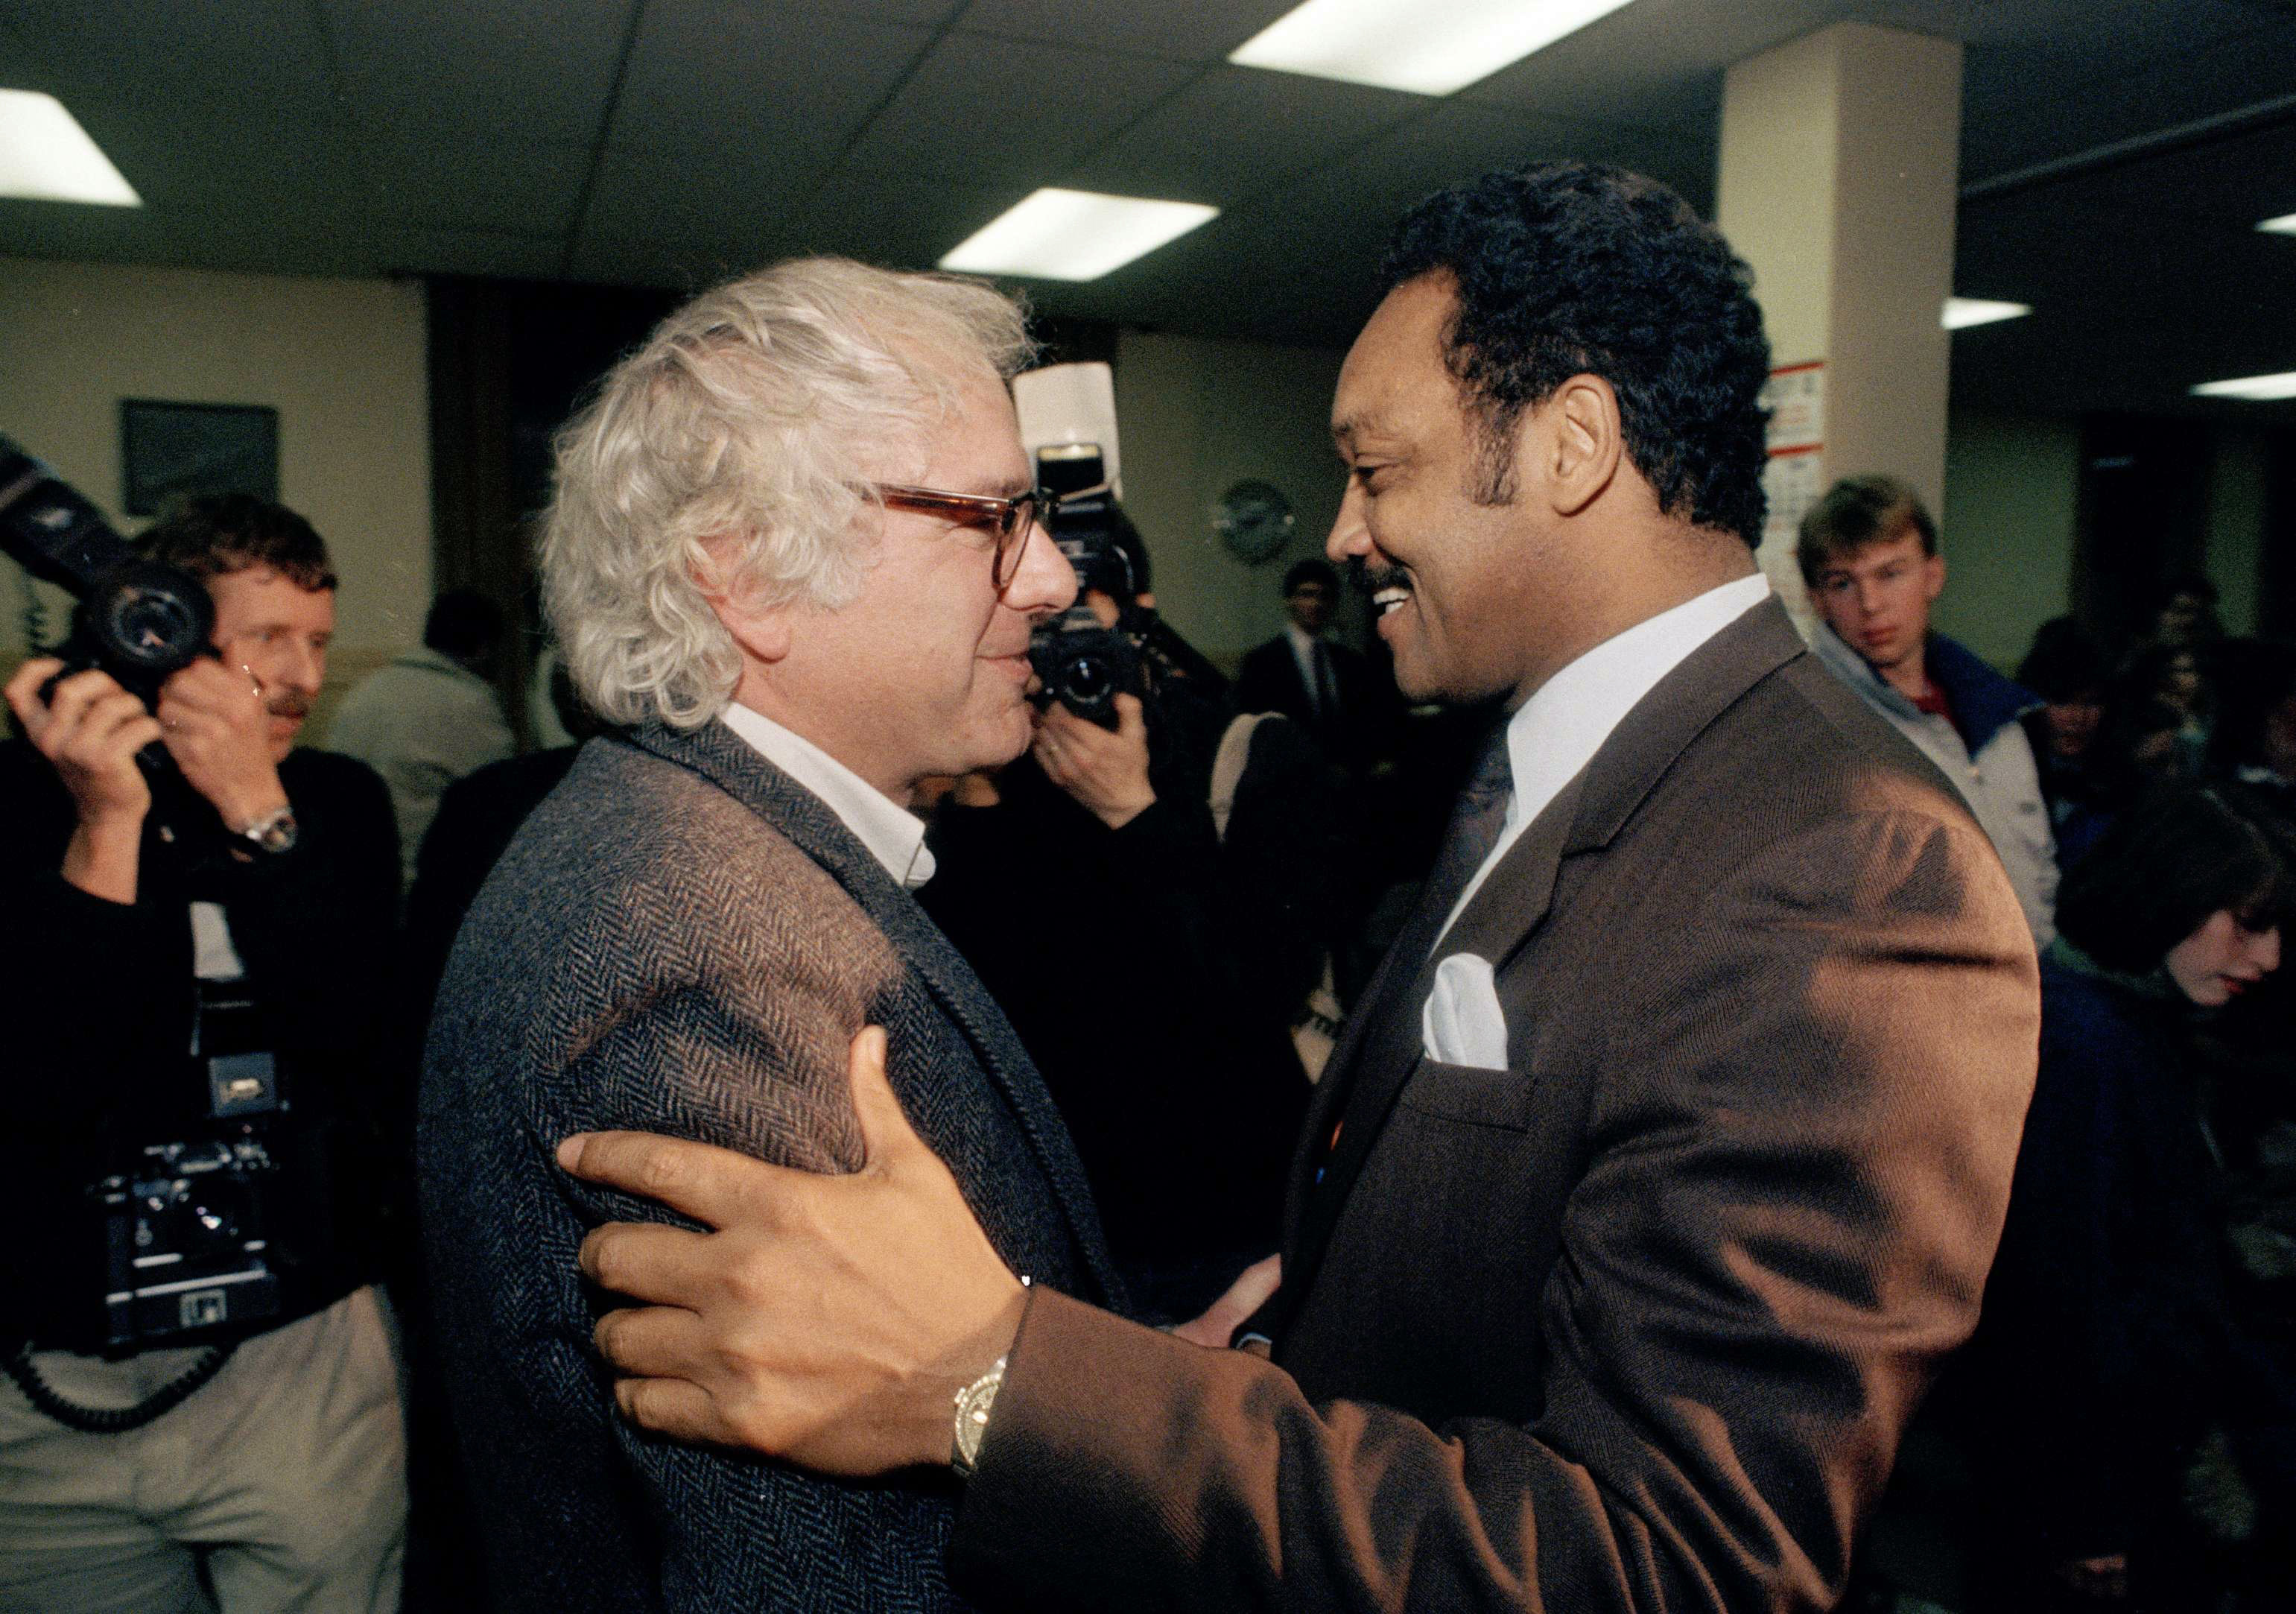 Bernie Sanders, then-mayor of Burlington, Vermont, greets then-presidential candidate Jesse Jackson at a campaign rally in 19